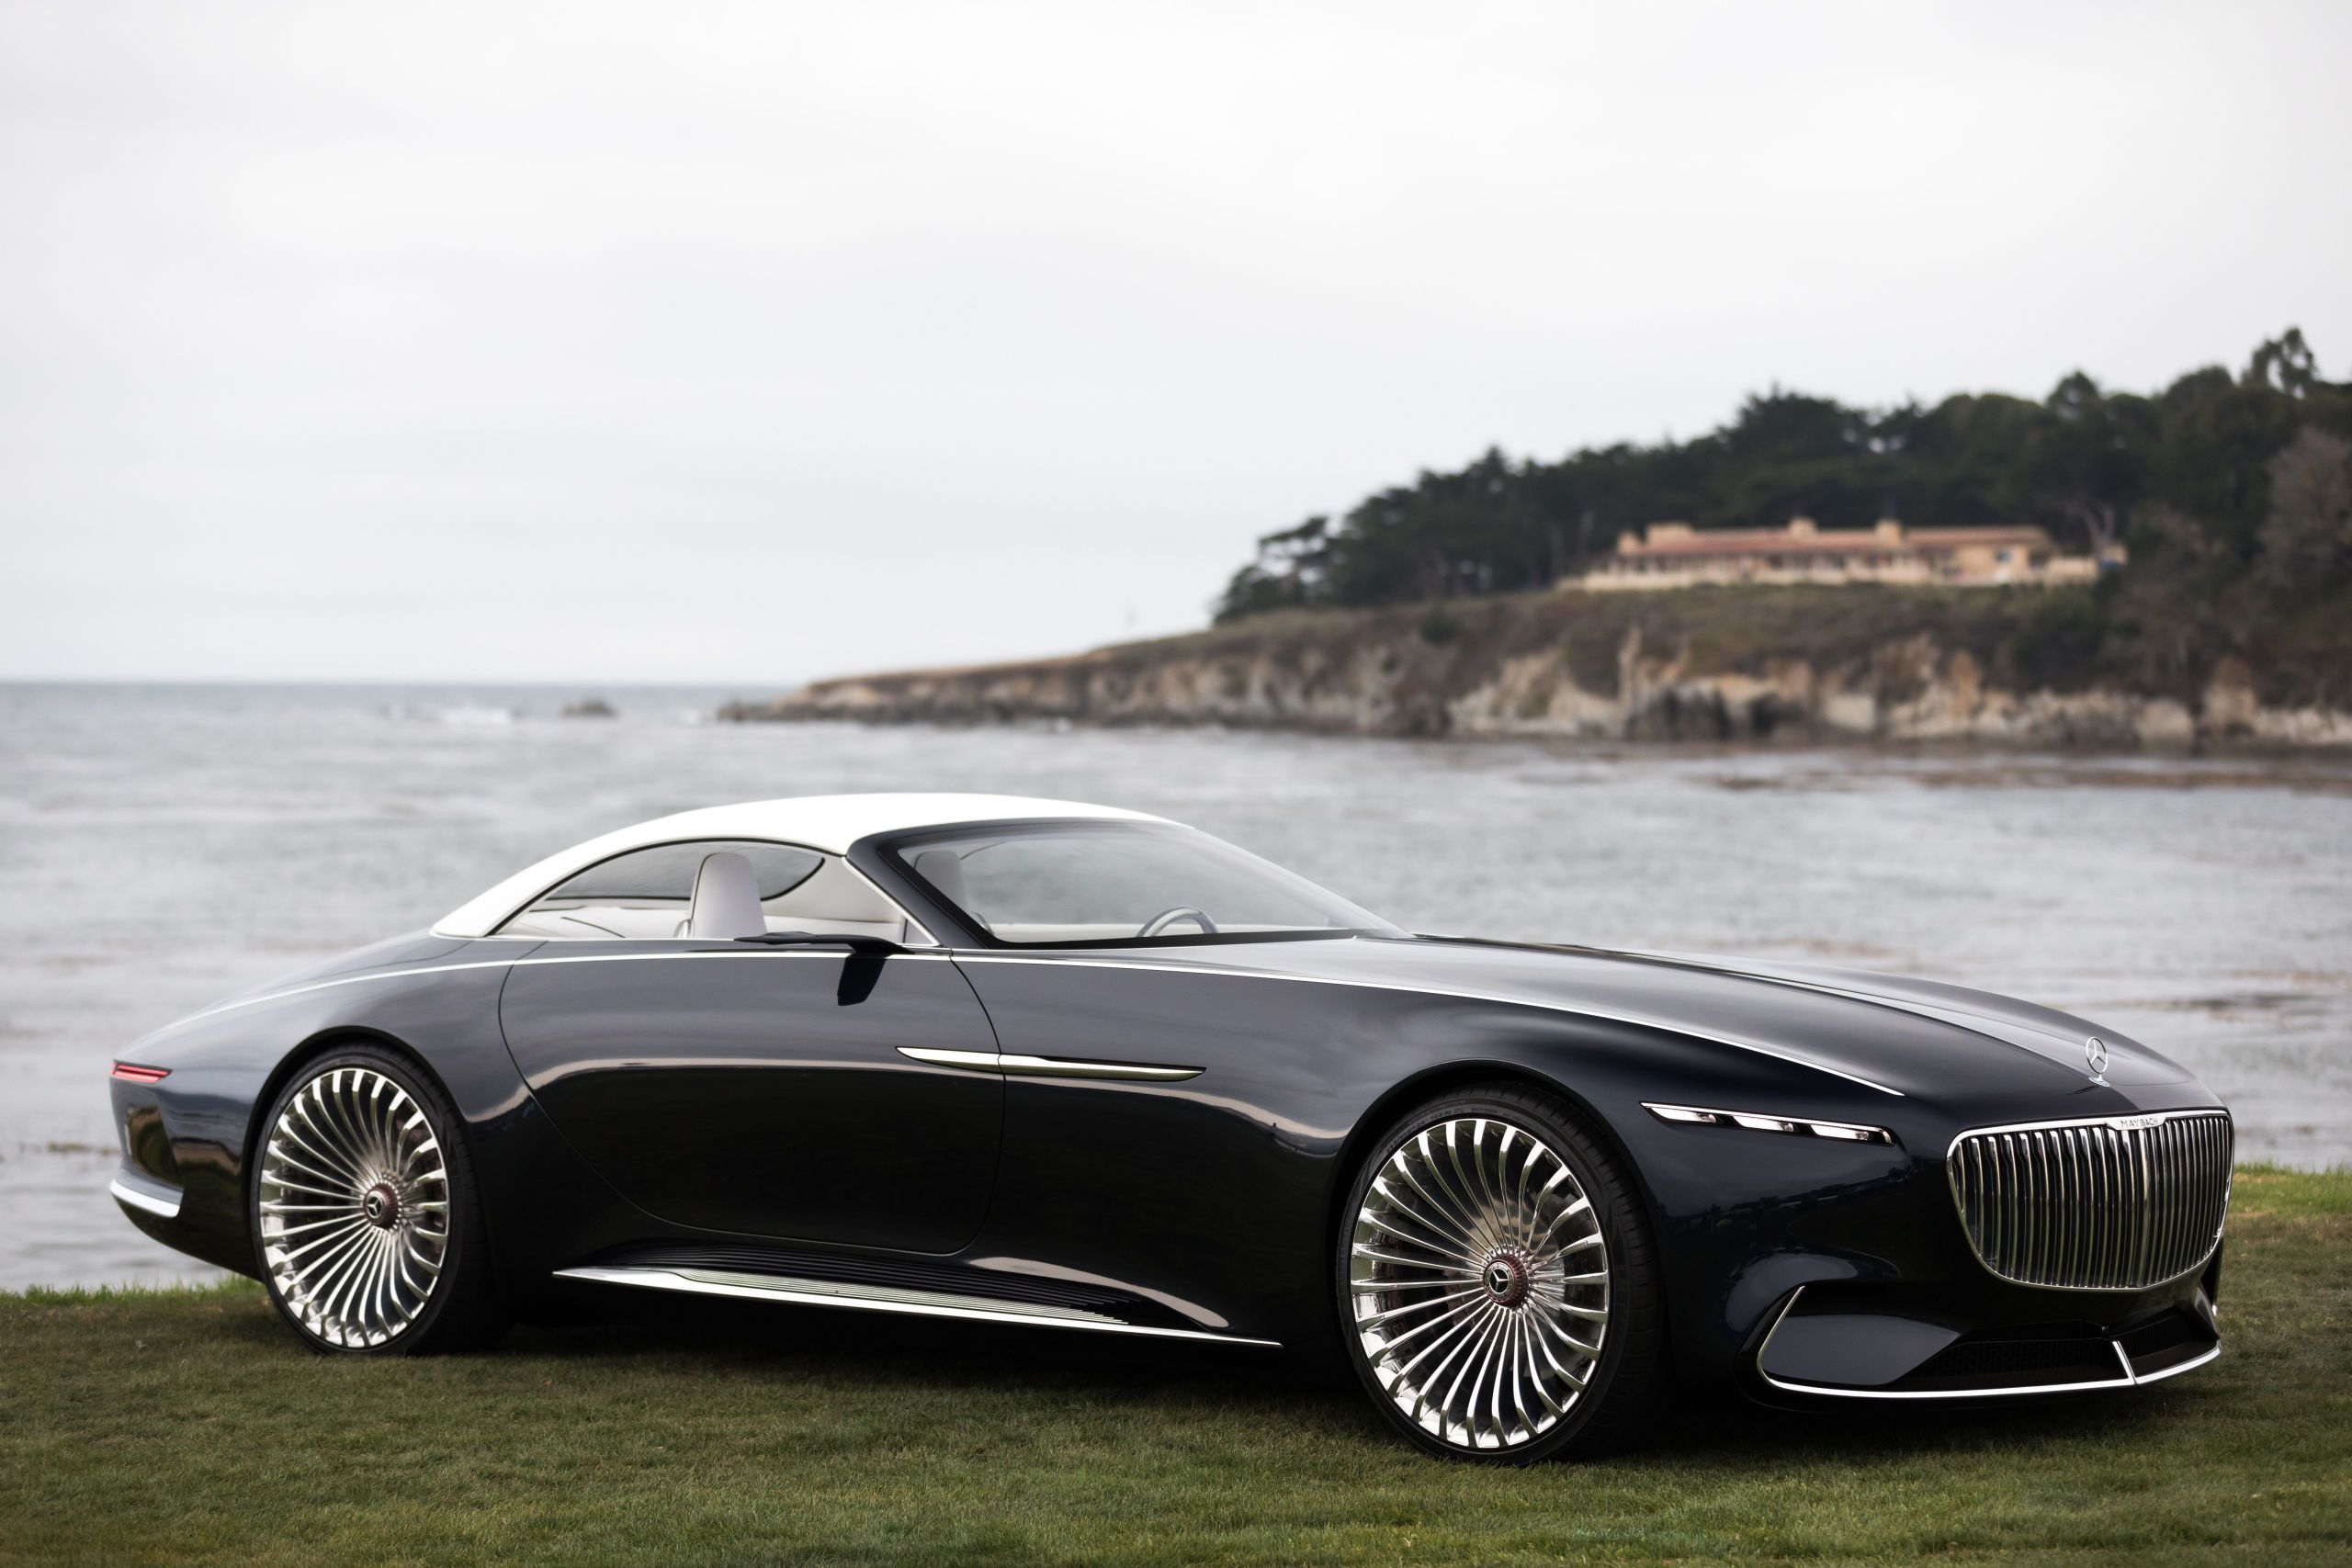 Mercedes-Maybach Unveils an Art Deco-Inspired Yacht on Wheels | Cars ...